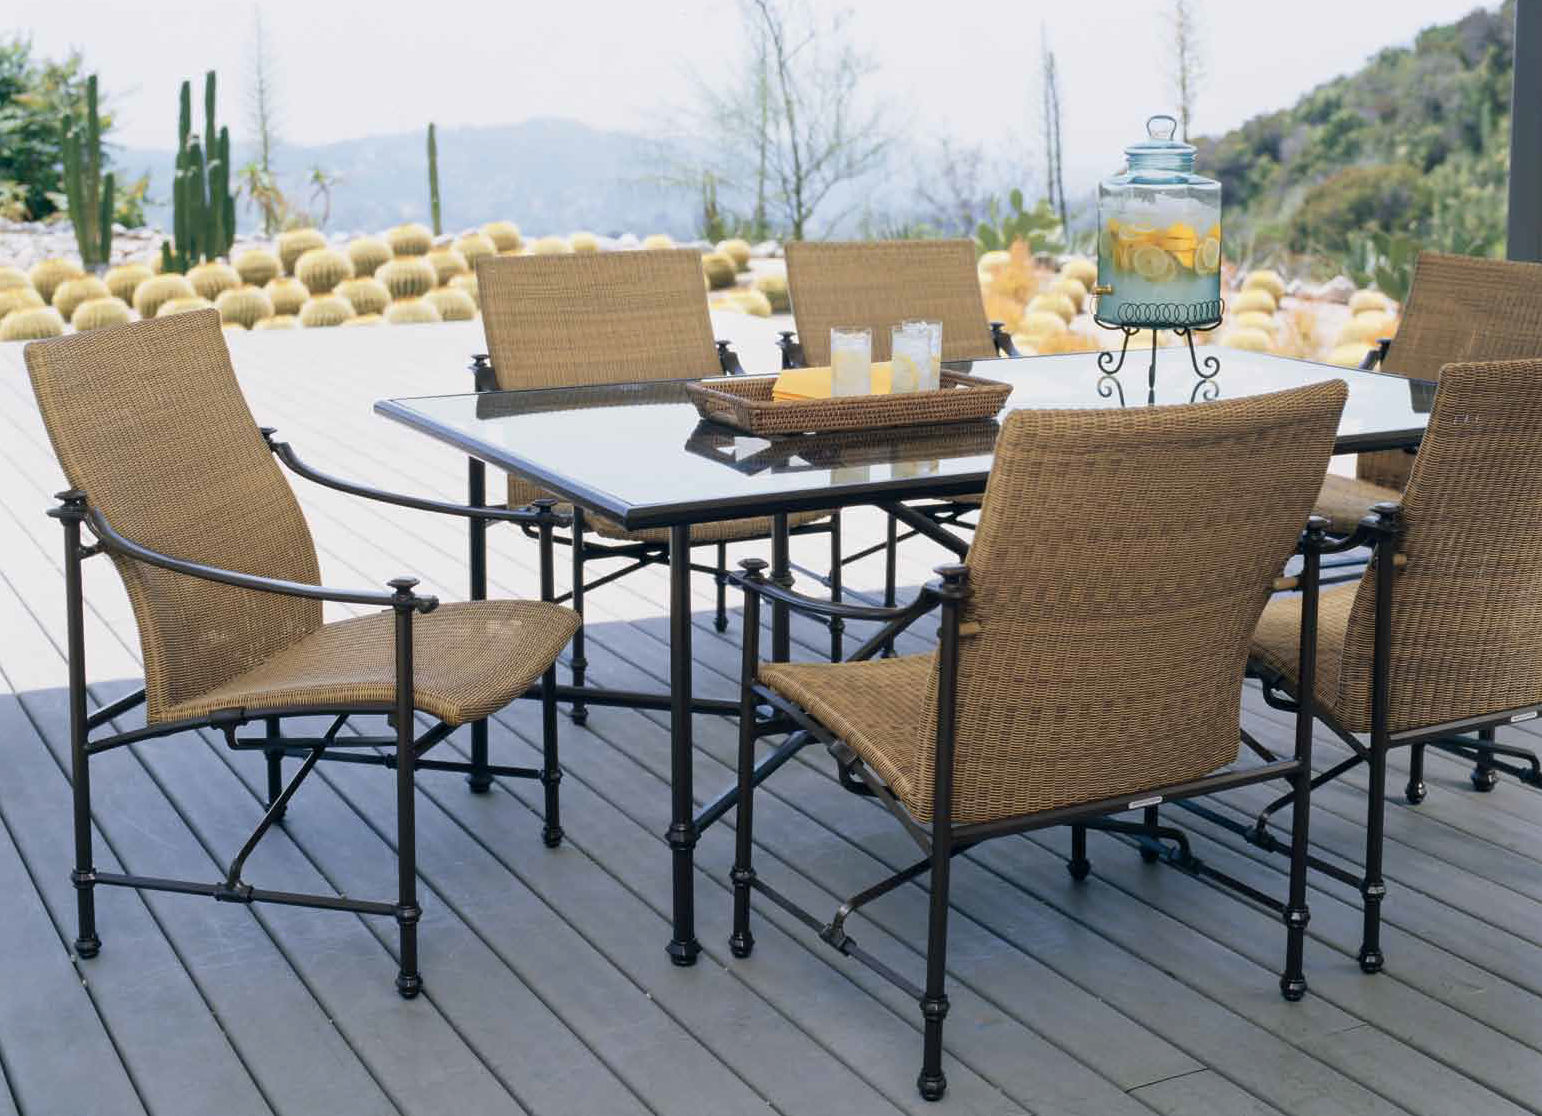 Brown Jordan Outdoor Kitchens Traditional Chair Mesh Aluminum With Armrests Campaign